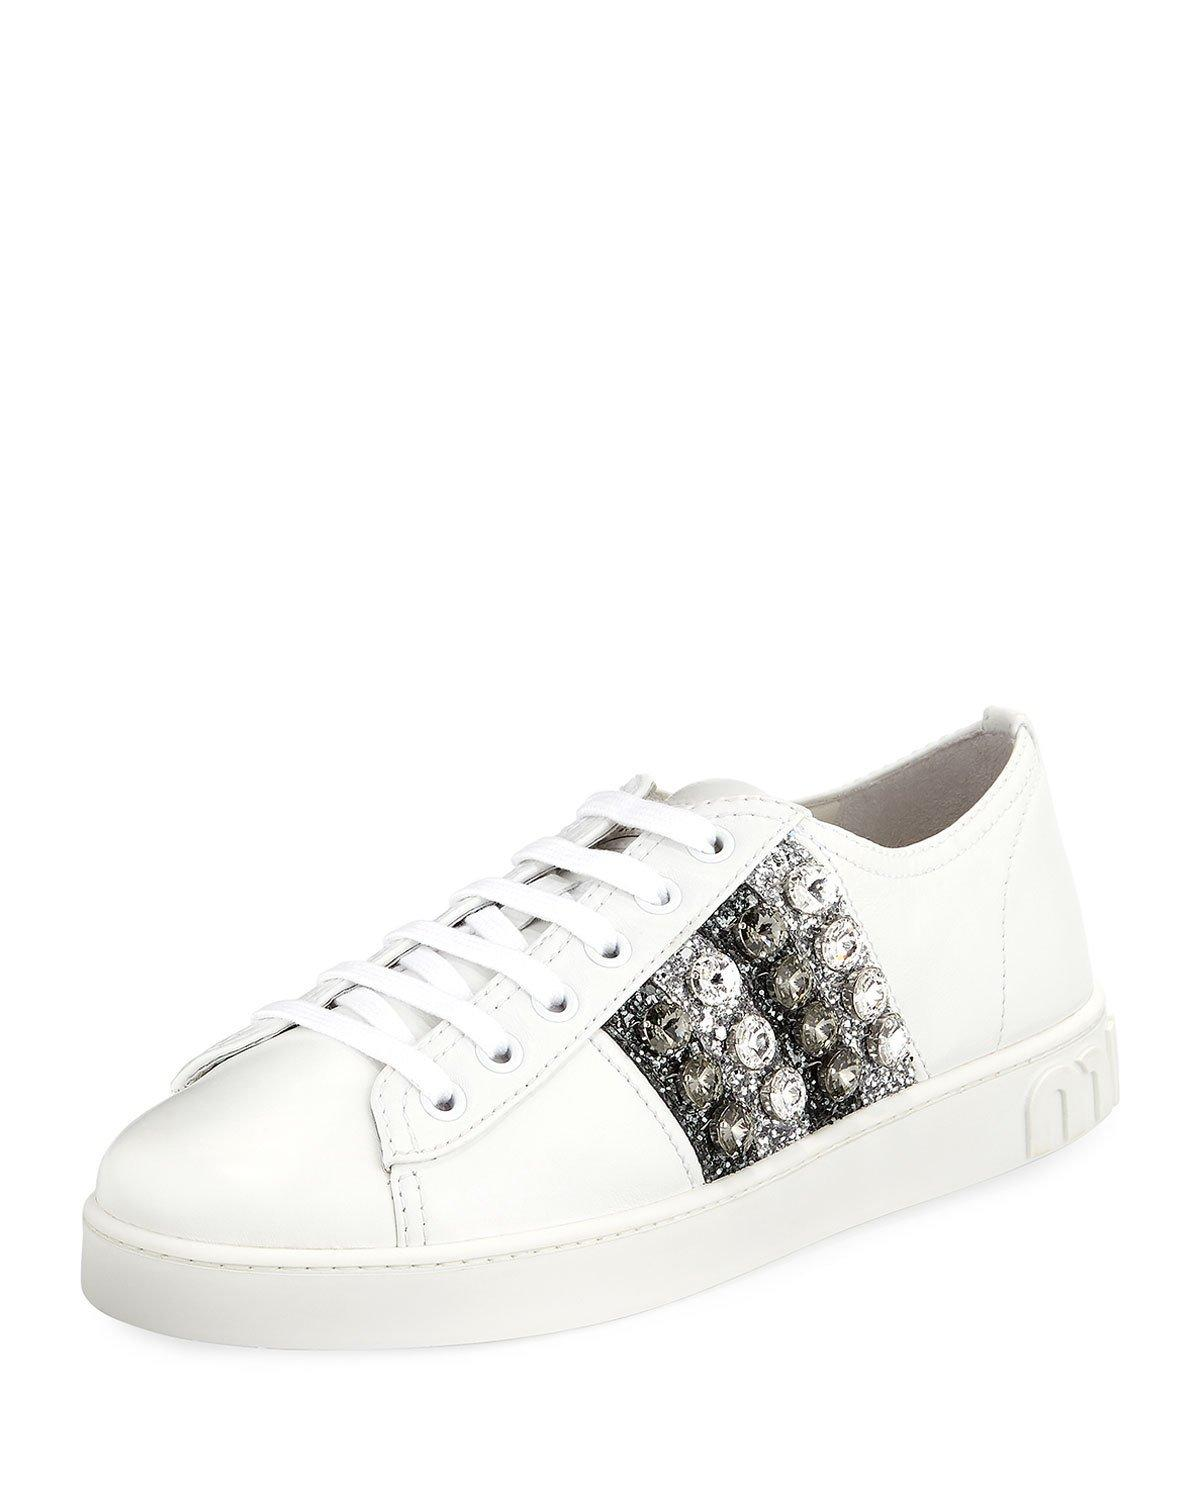 6bc09ba74bcc0 Miu Miu Crystal And Glitter-Embellished Leather Platform Sneakers In White